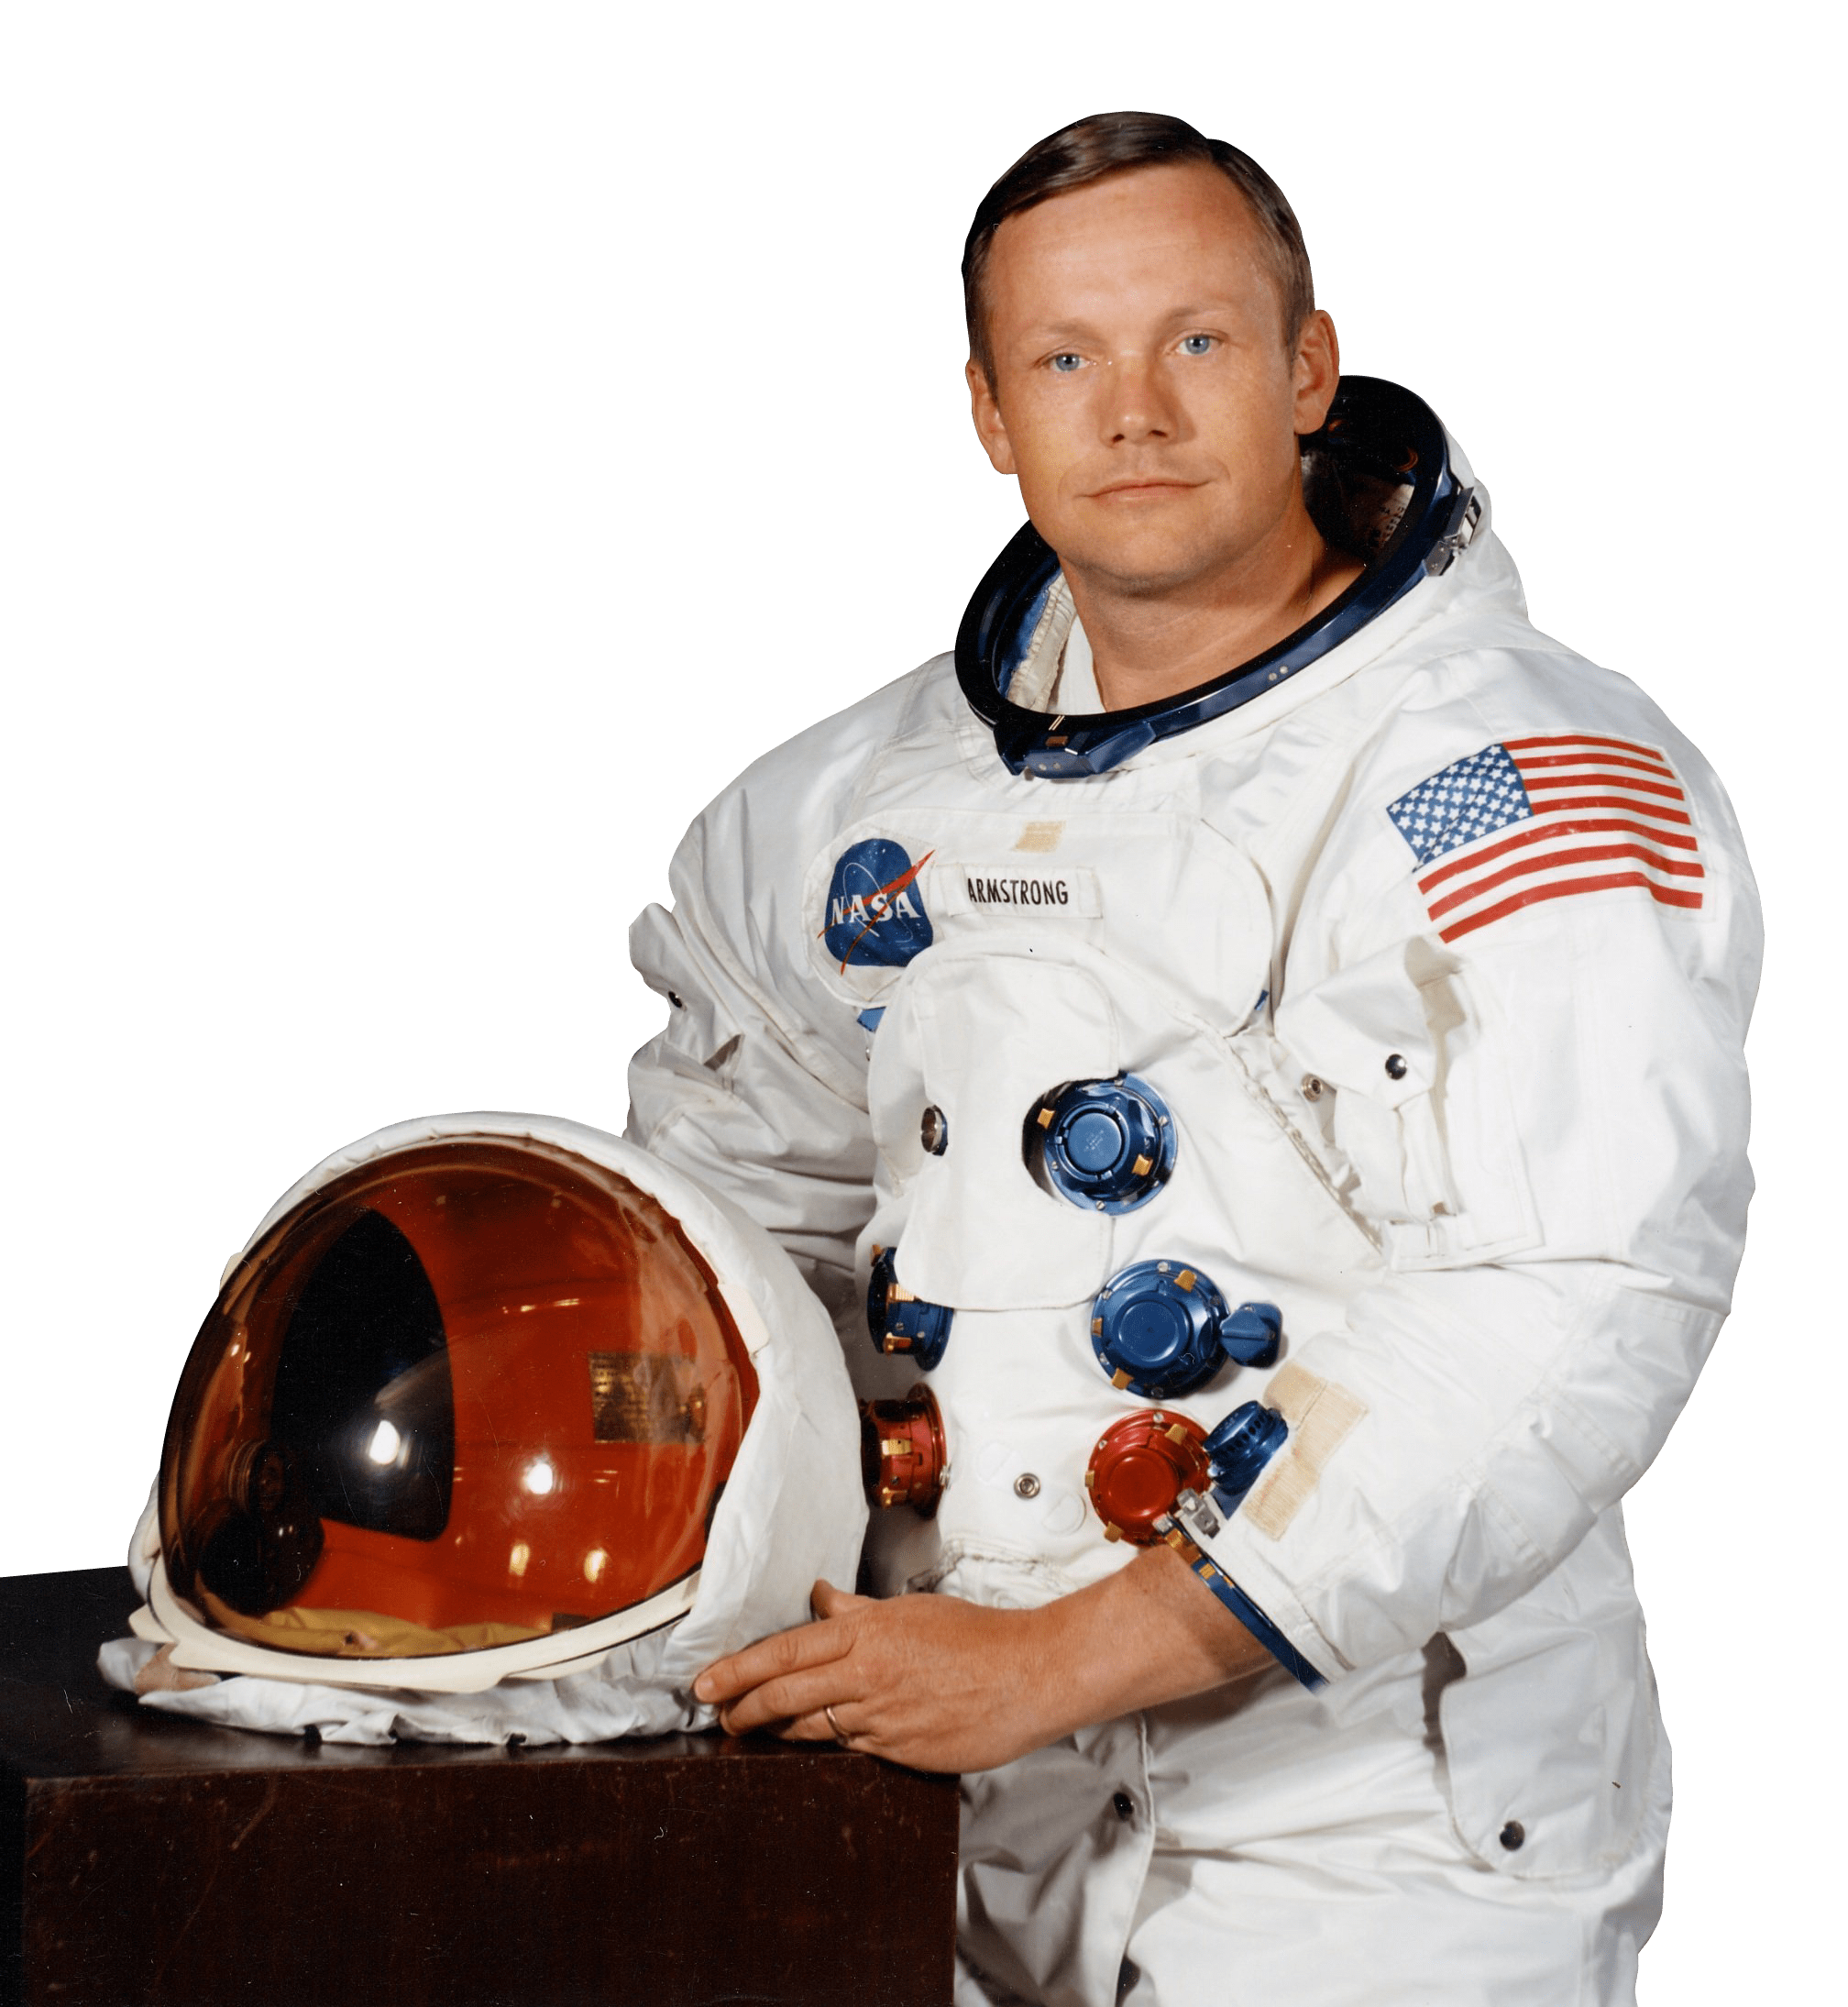 pin Astronaut clipart neil armstrong #14 - Logo Armstrong PNG